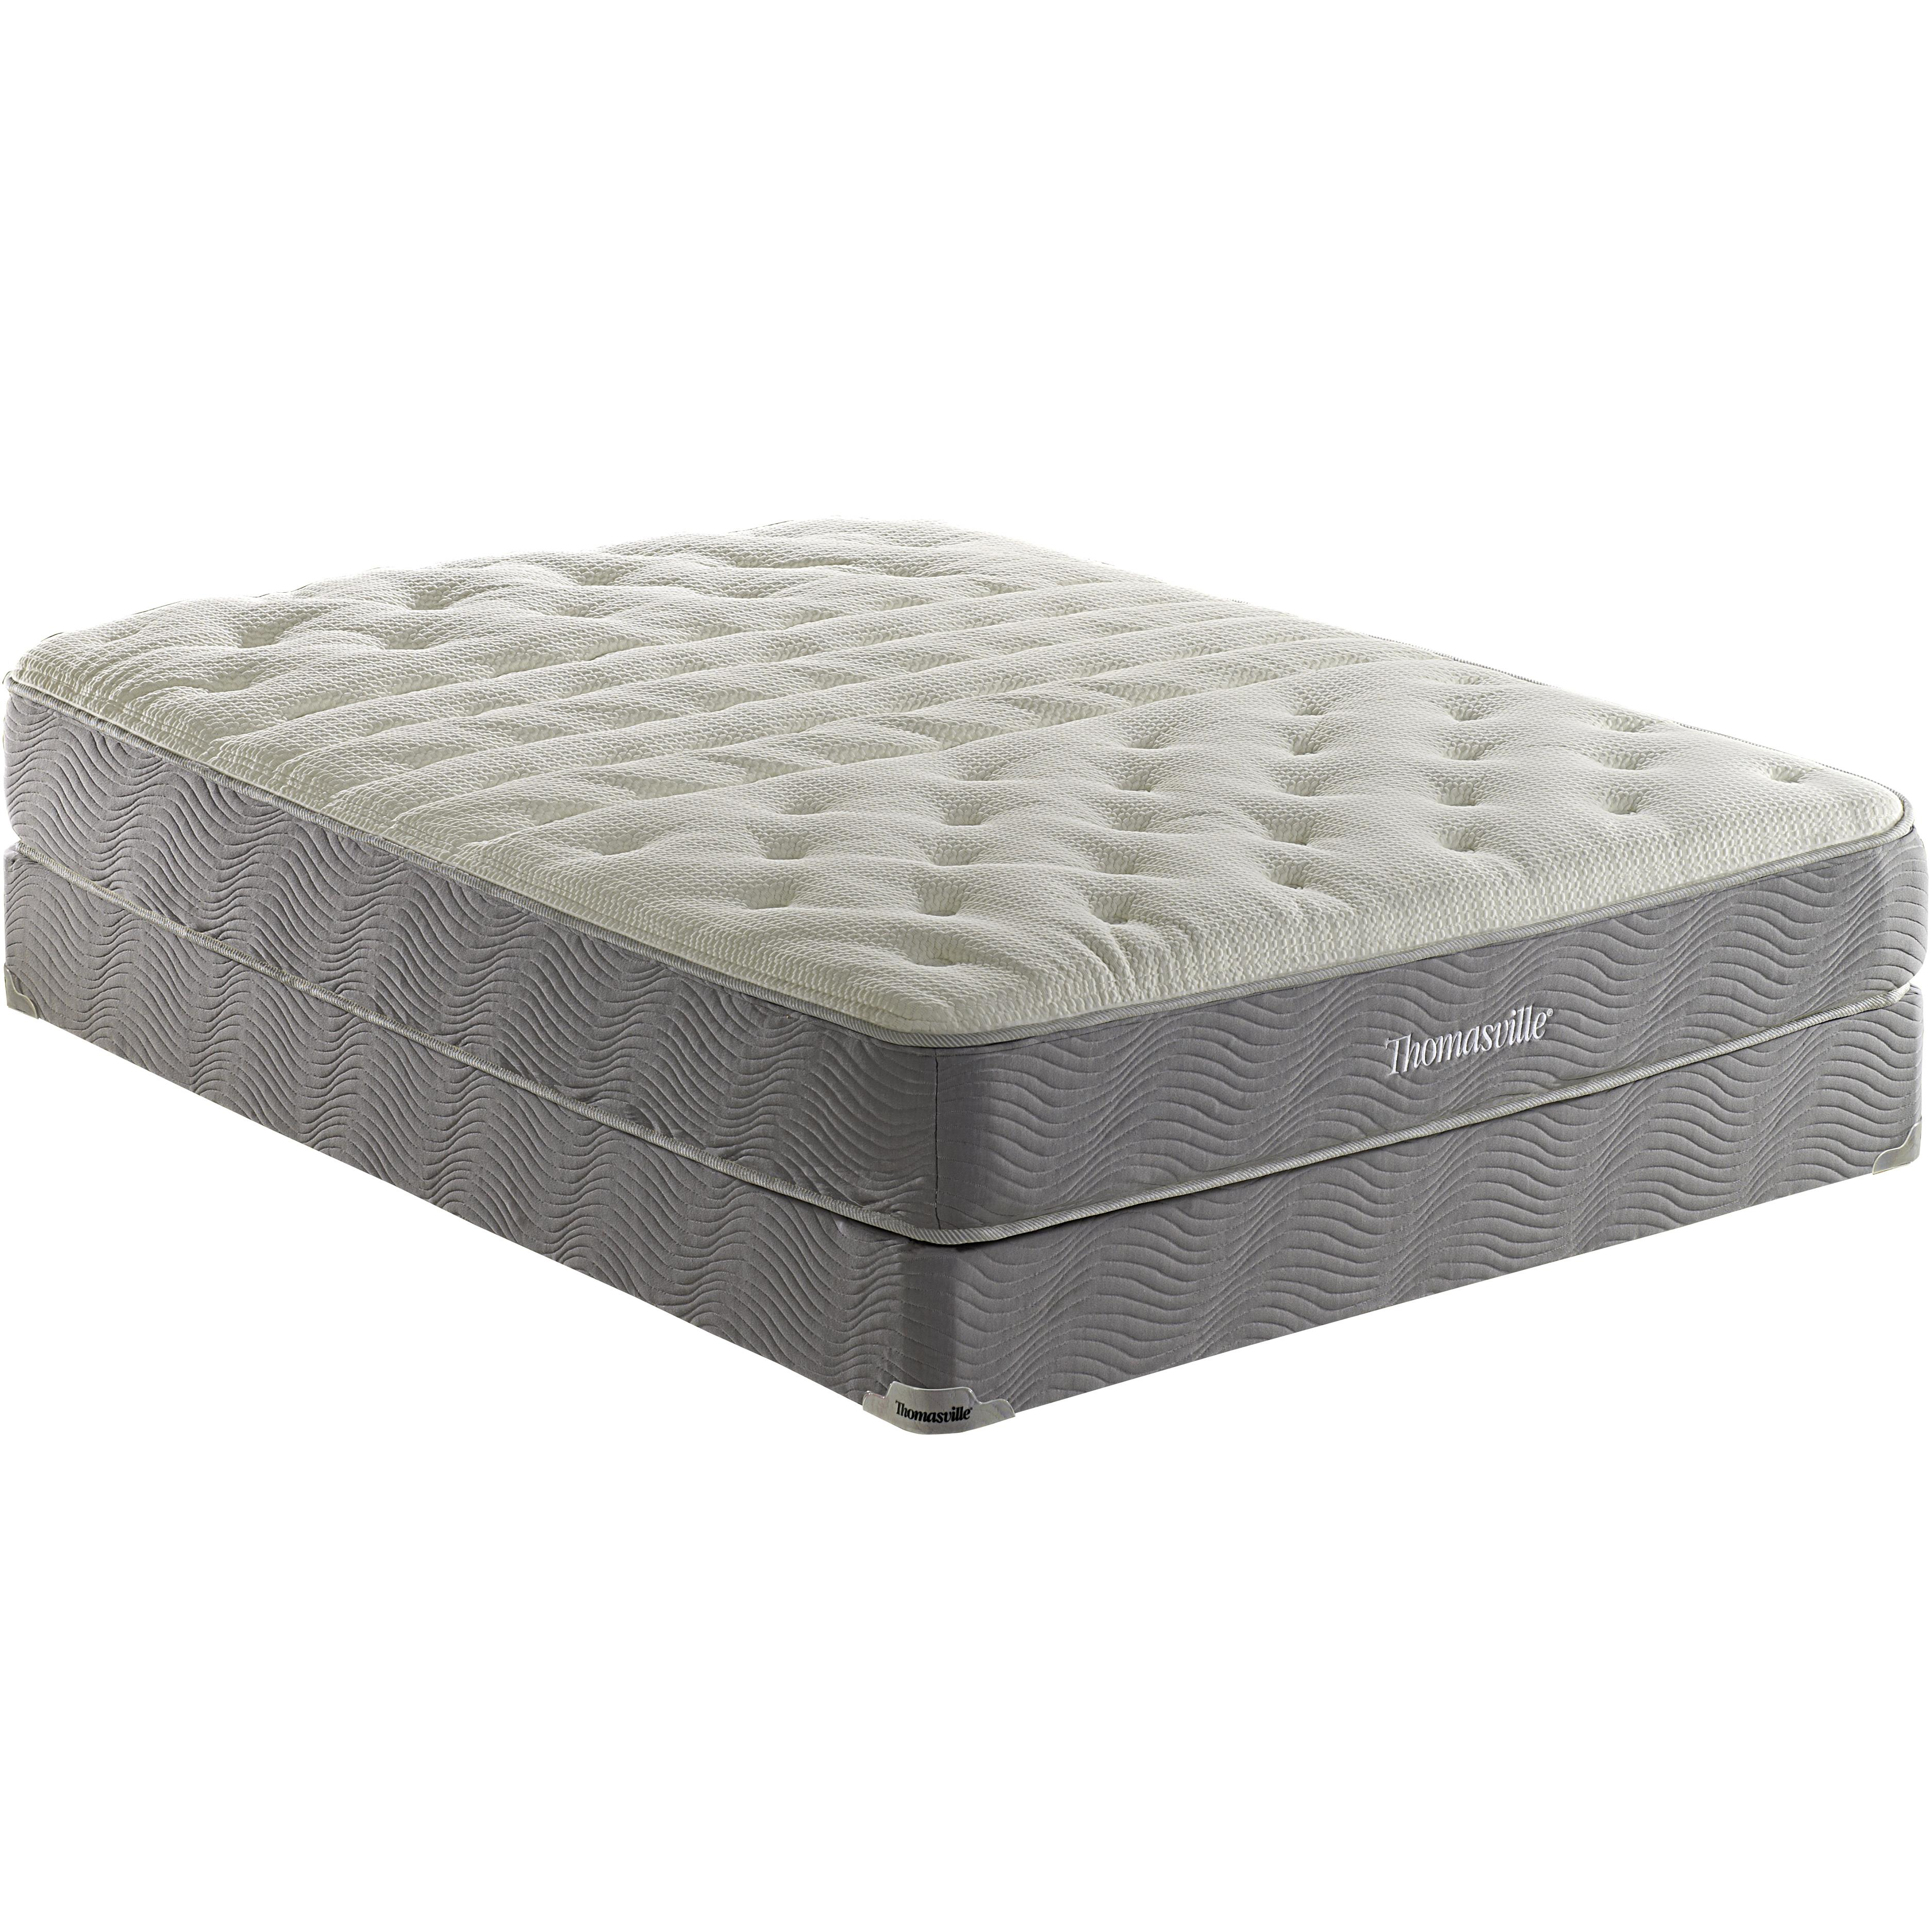 King Adjustable Dual Zone Airbed Mattres